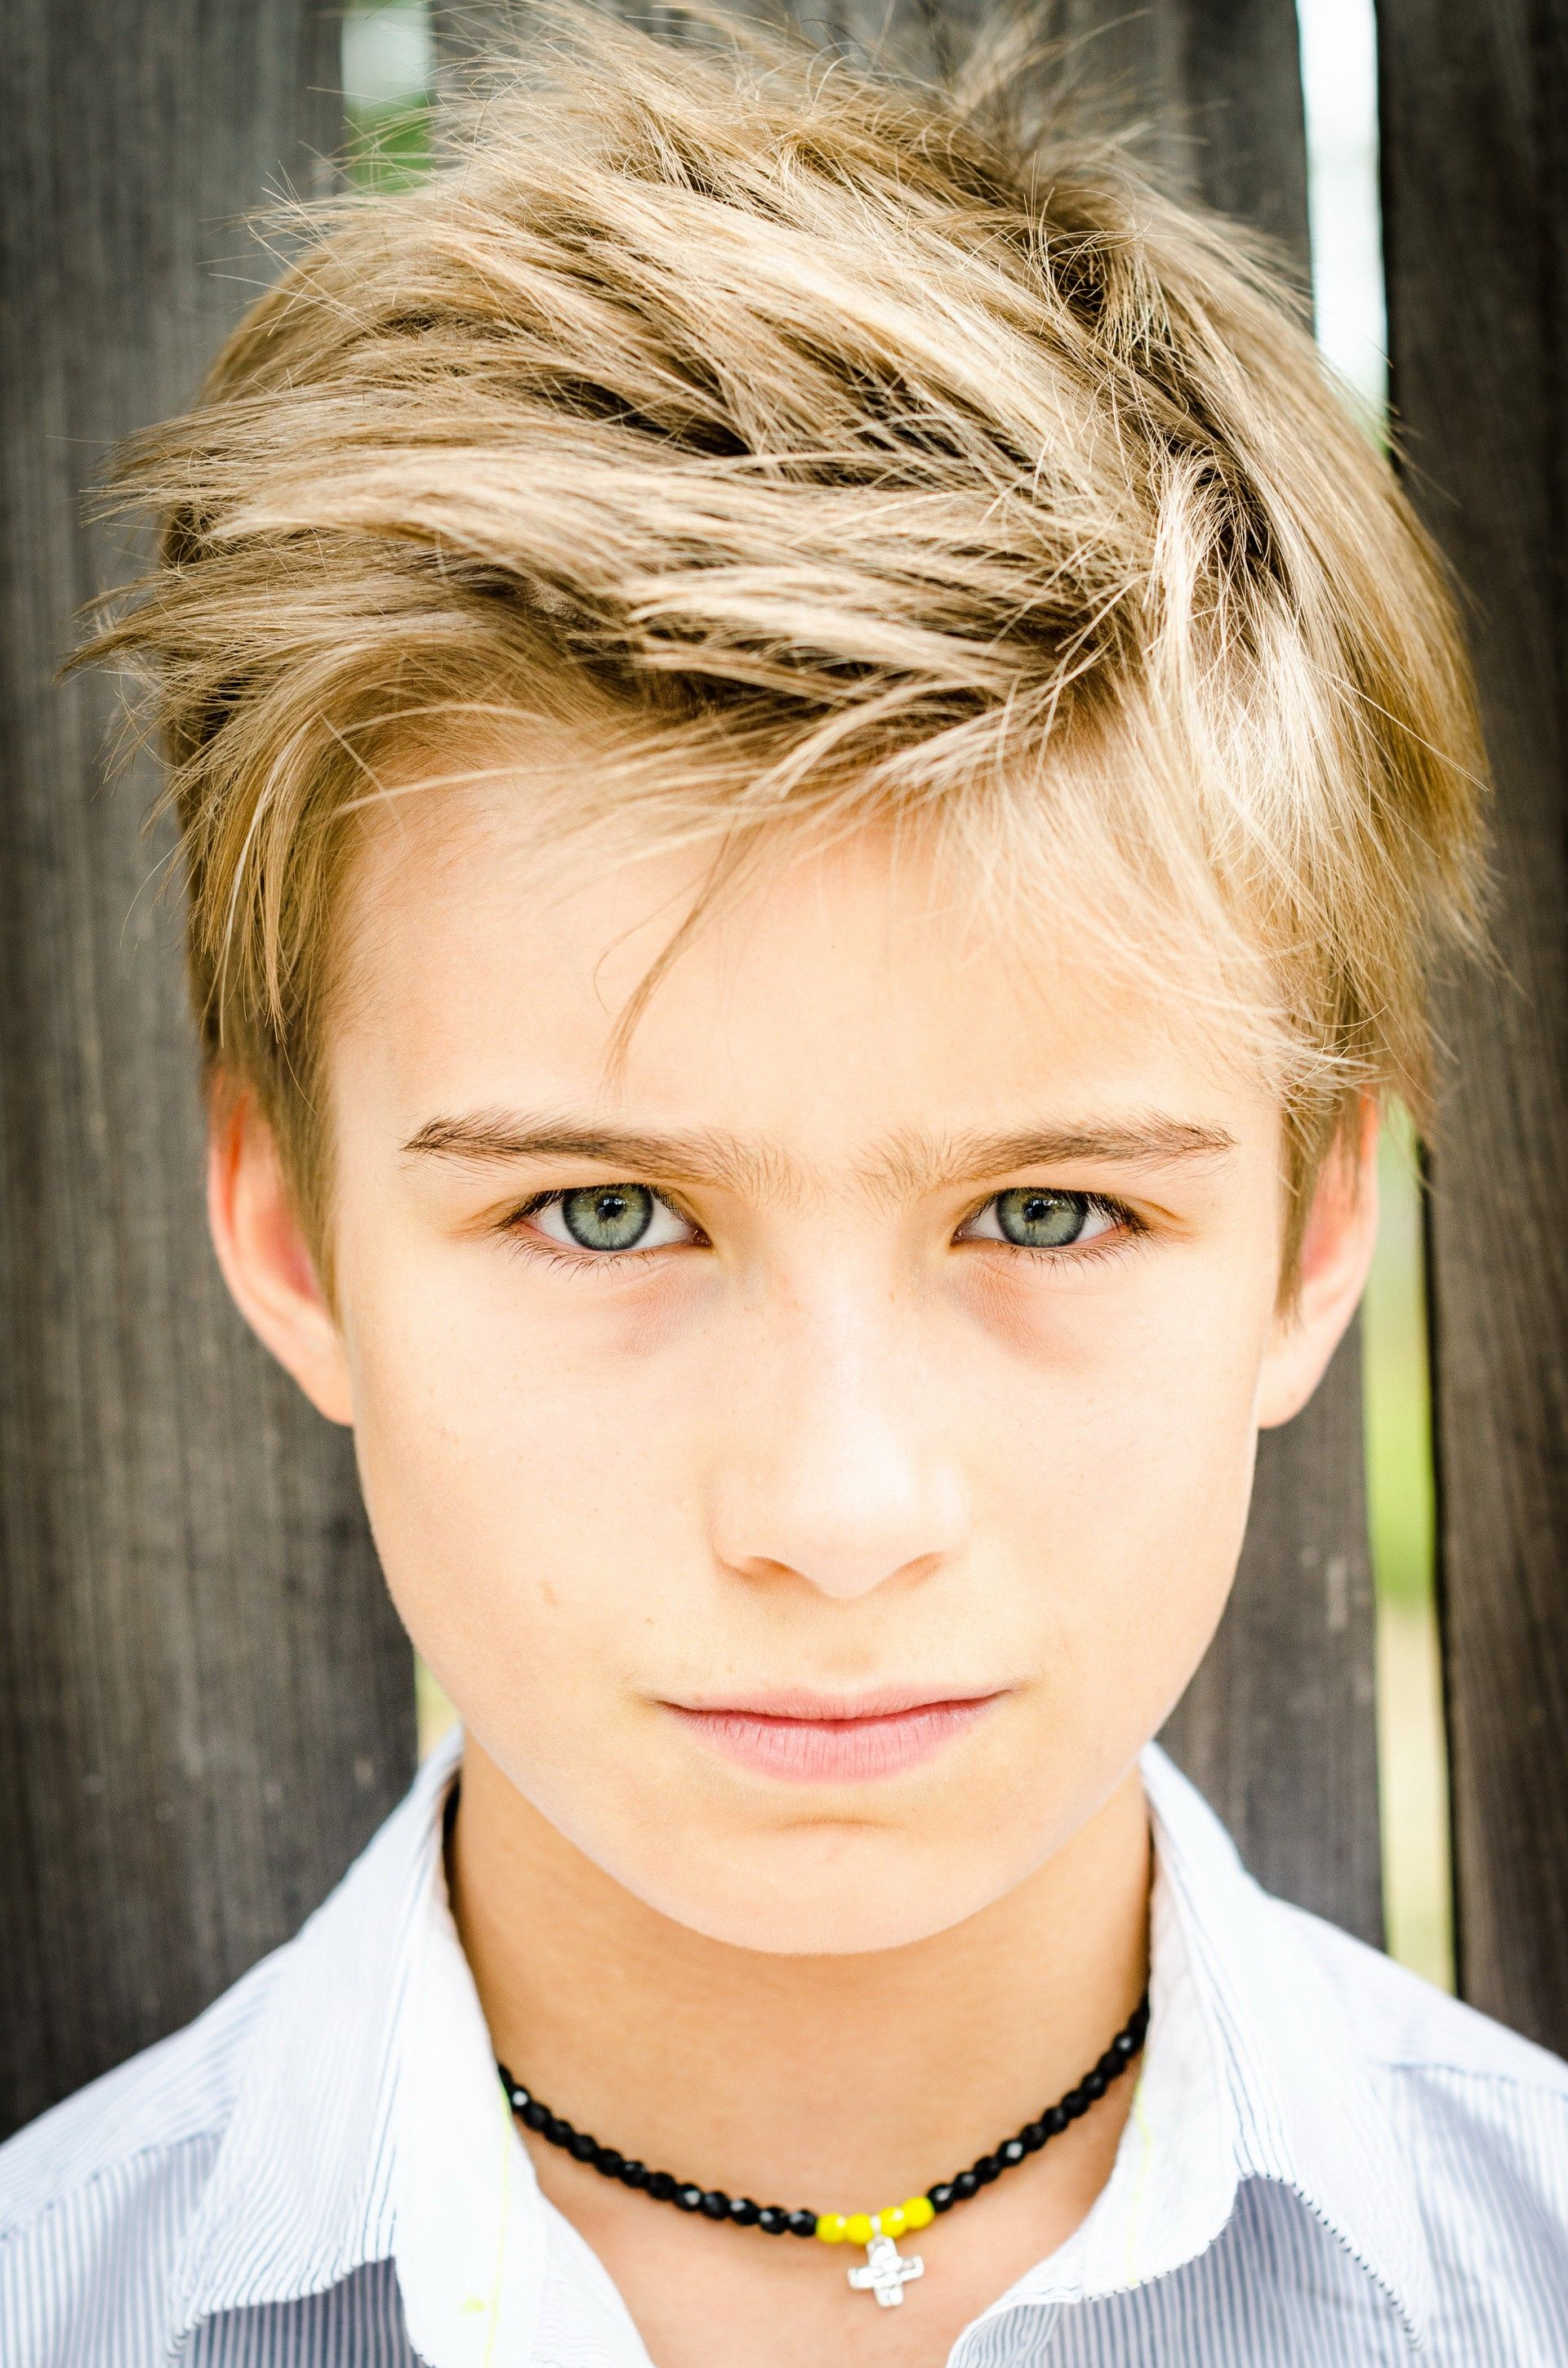 image result for 12 year old boy | totes cute | boy